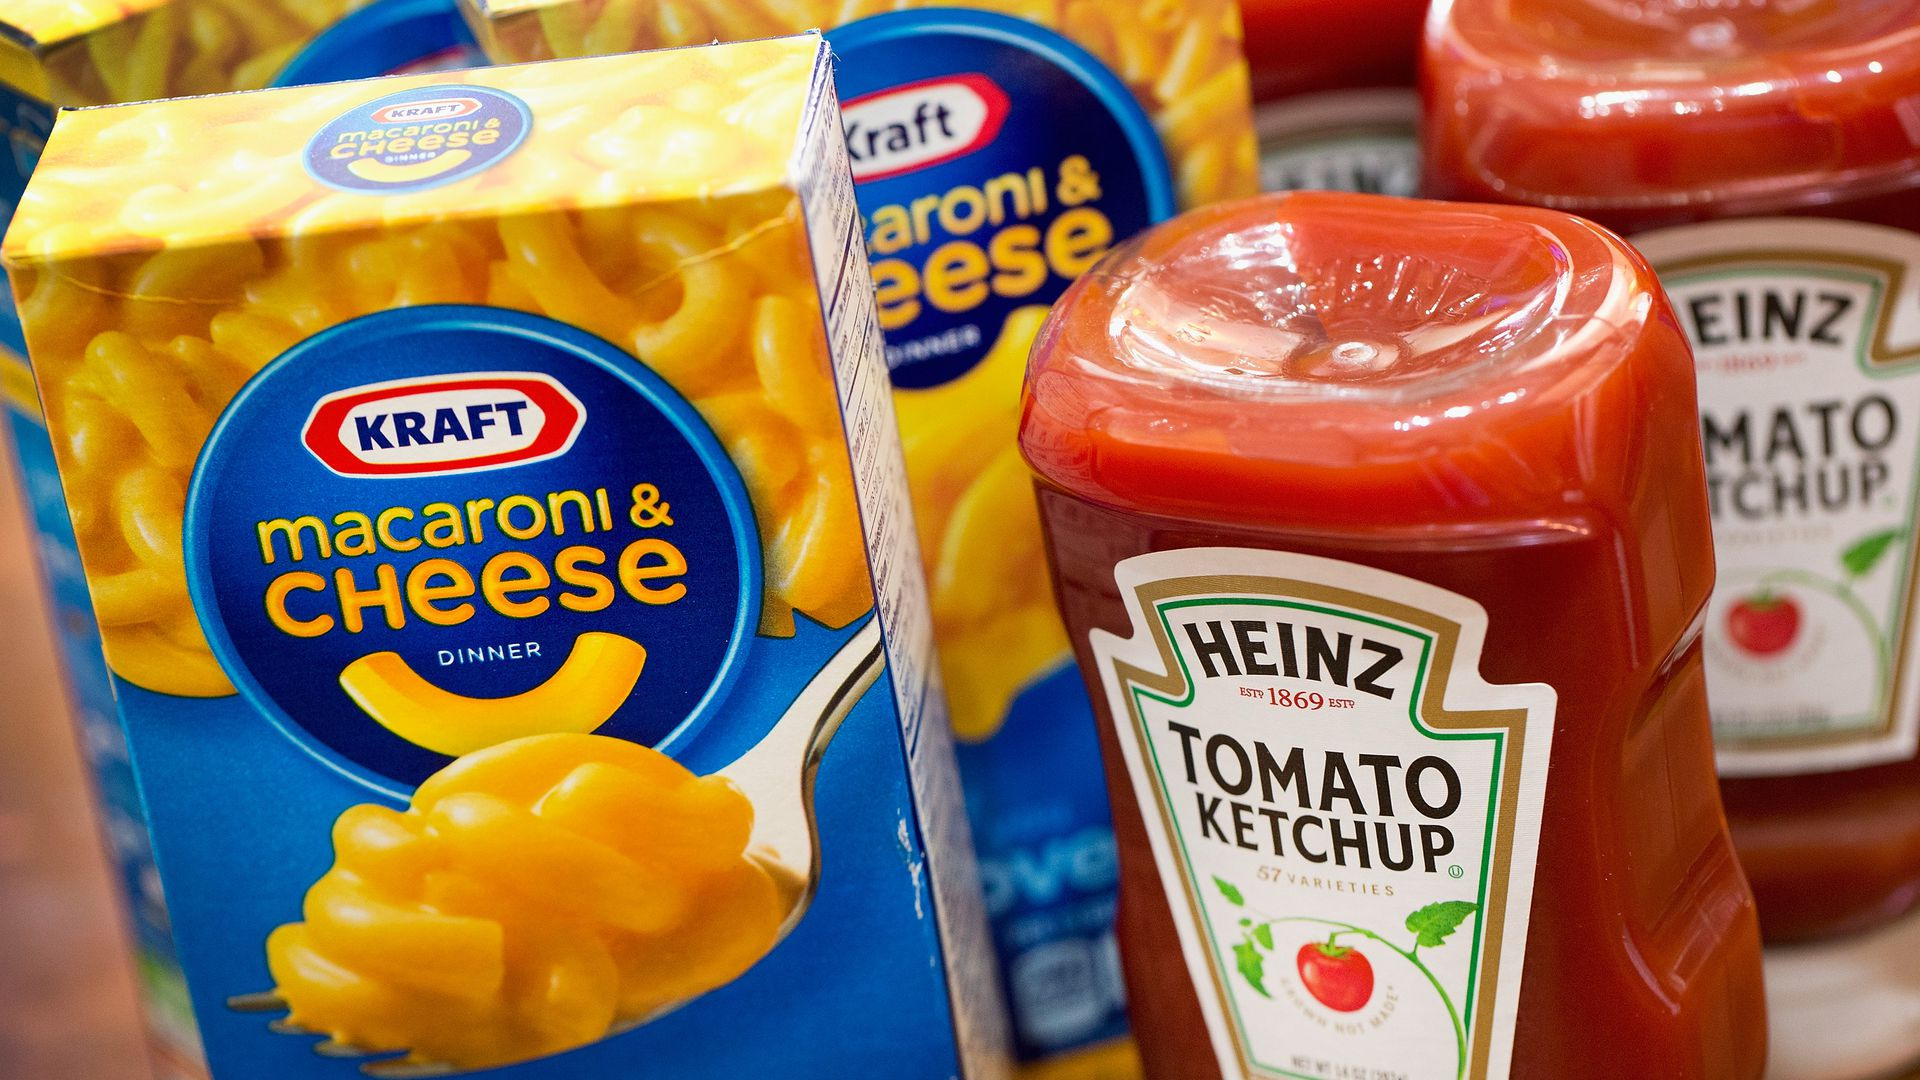 Kraft and Heinz products.